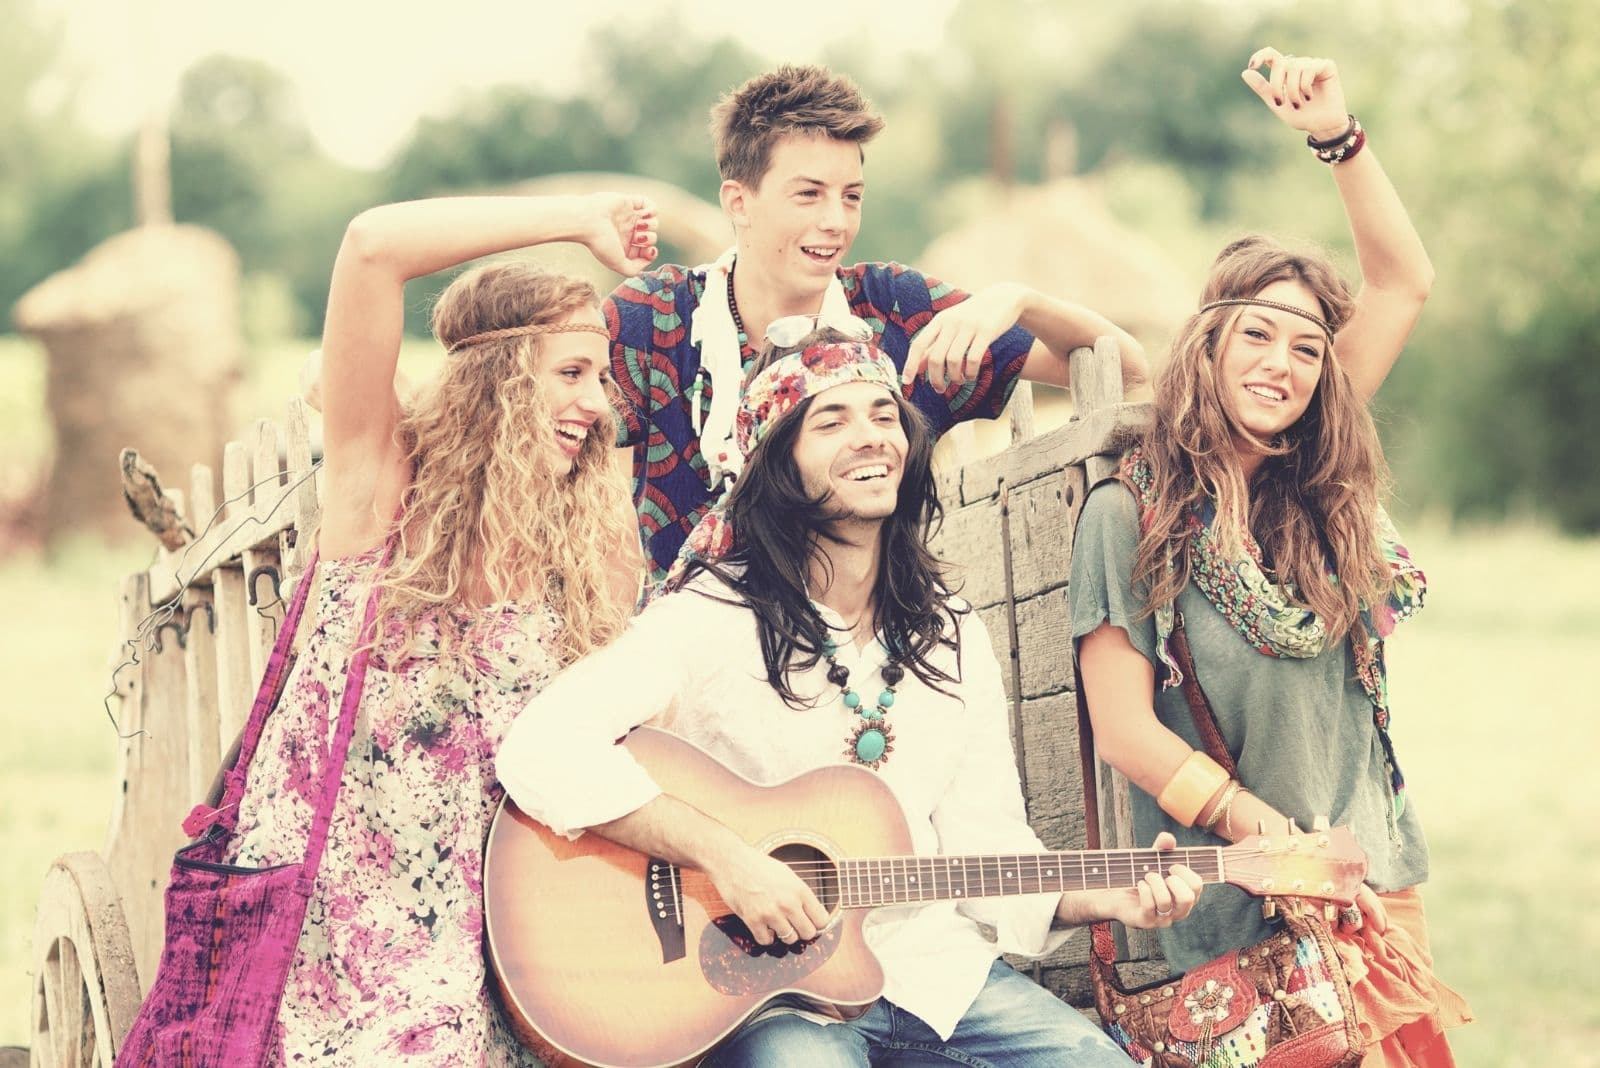 hippies having fun outdoors singing and playing guitar